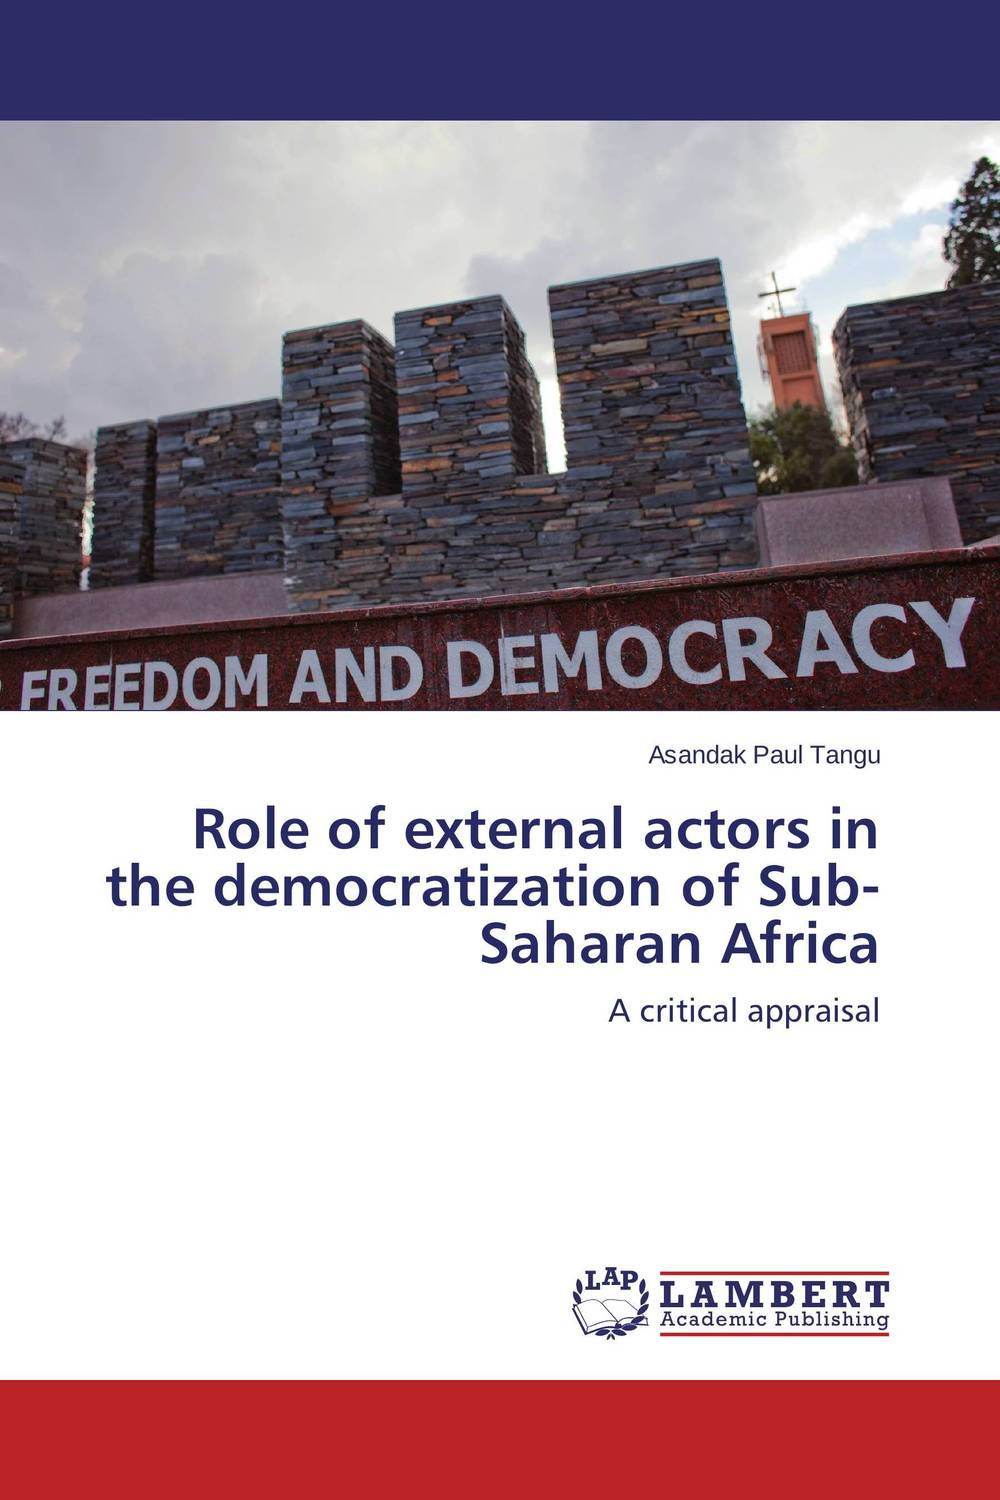 купить Role of external actors in the democratization of Sub-Saharan Africa недорого